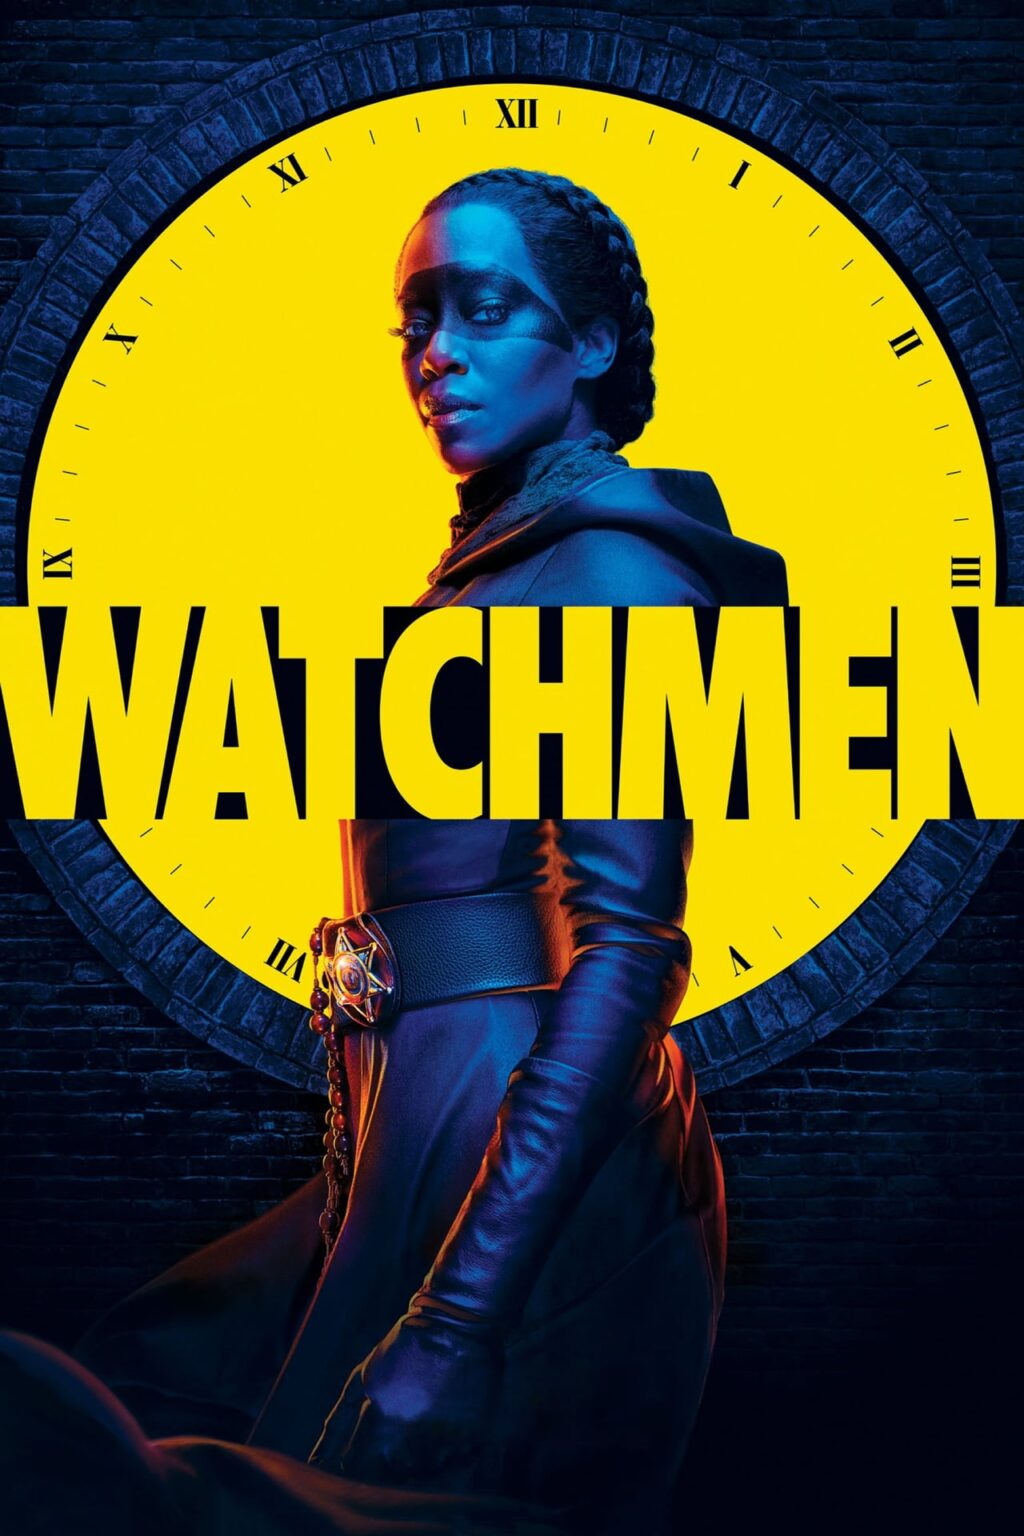 HBO Watchmen Poster 1024x1536 - Kevin Smith Explains Why WATCHMEN Was the Best Thing This Year